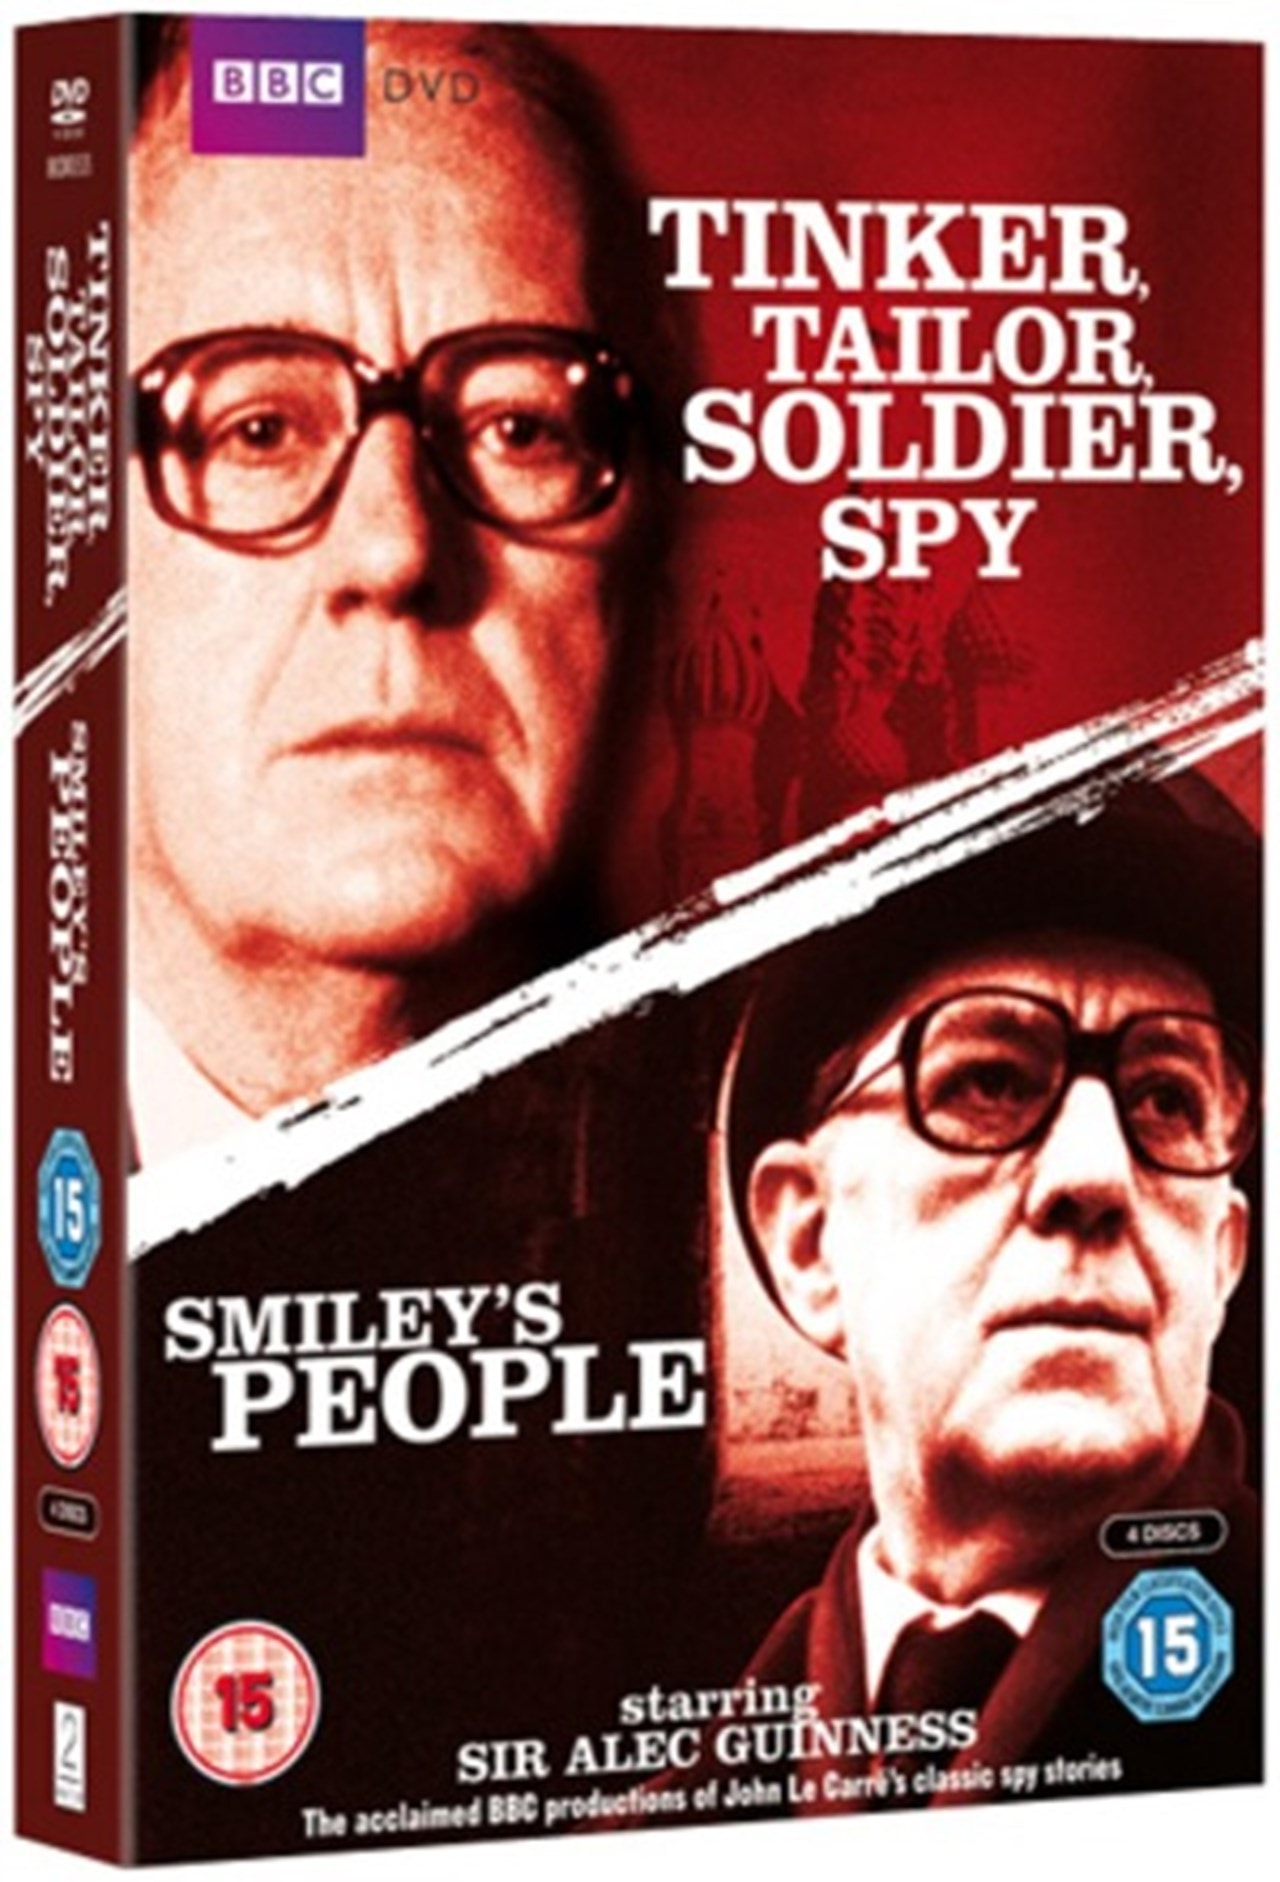 Tinker, Tailor, Soldier, Spy/Smiley's People - 1